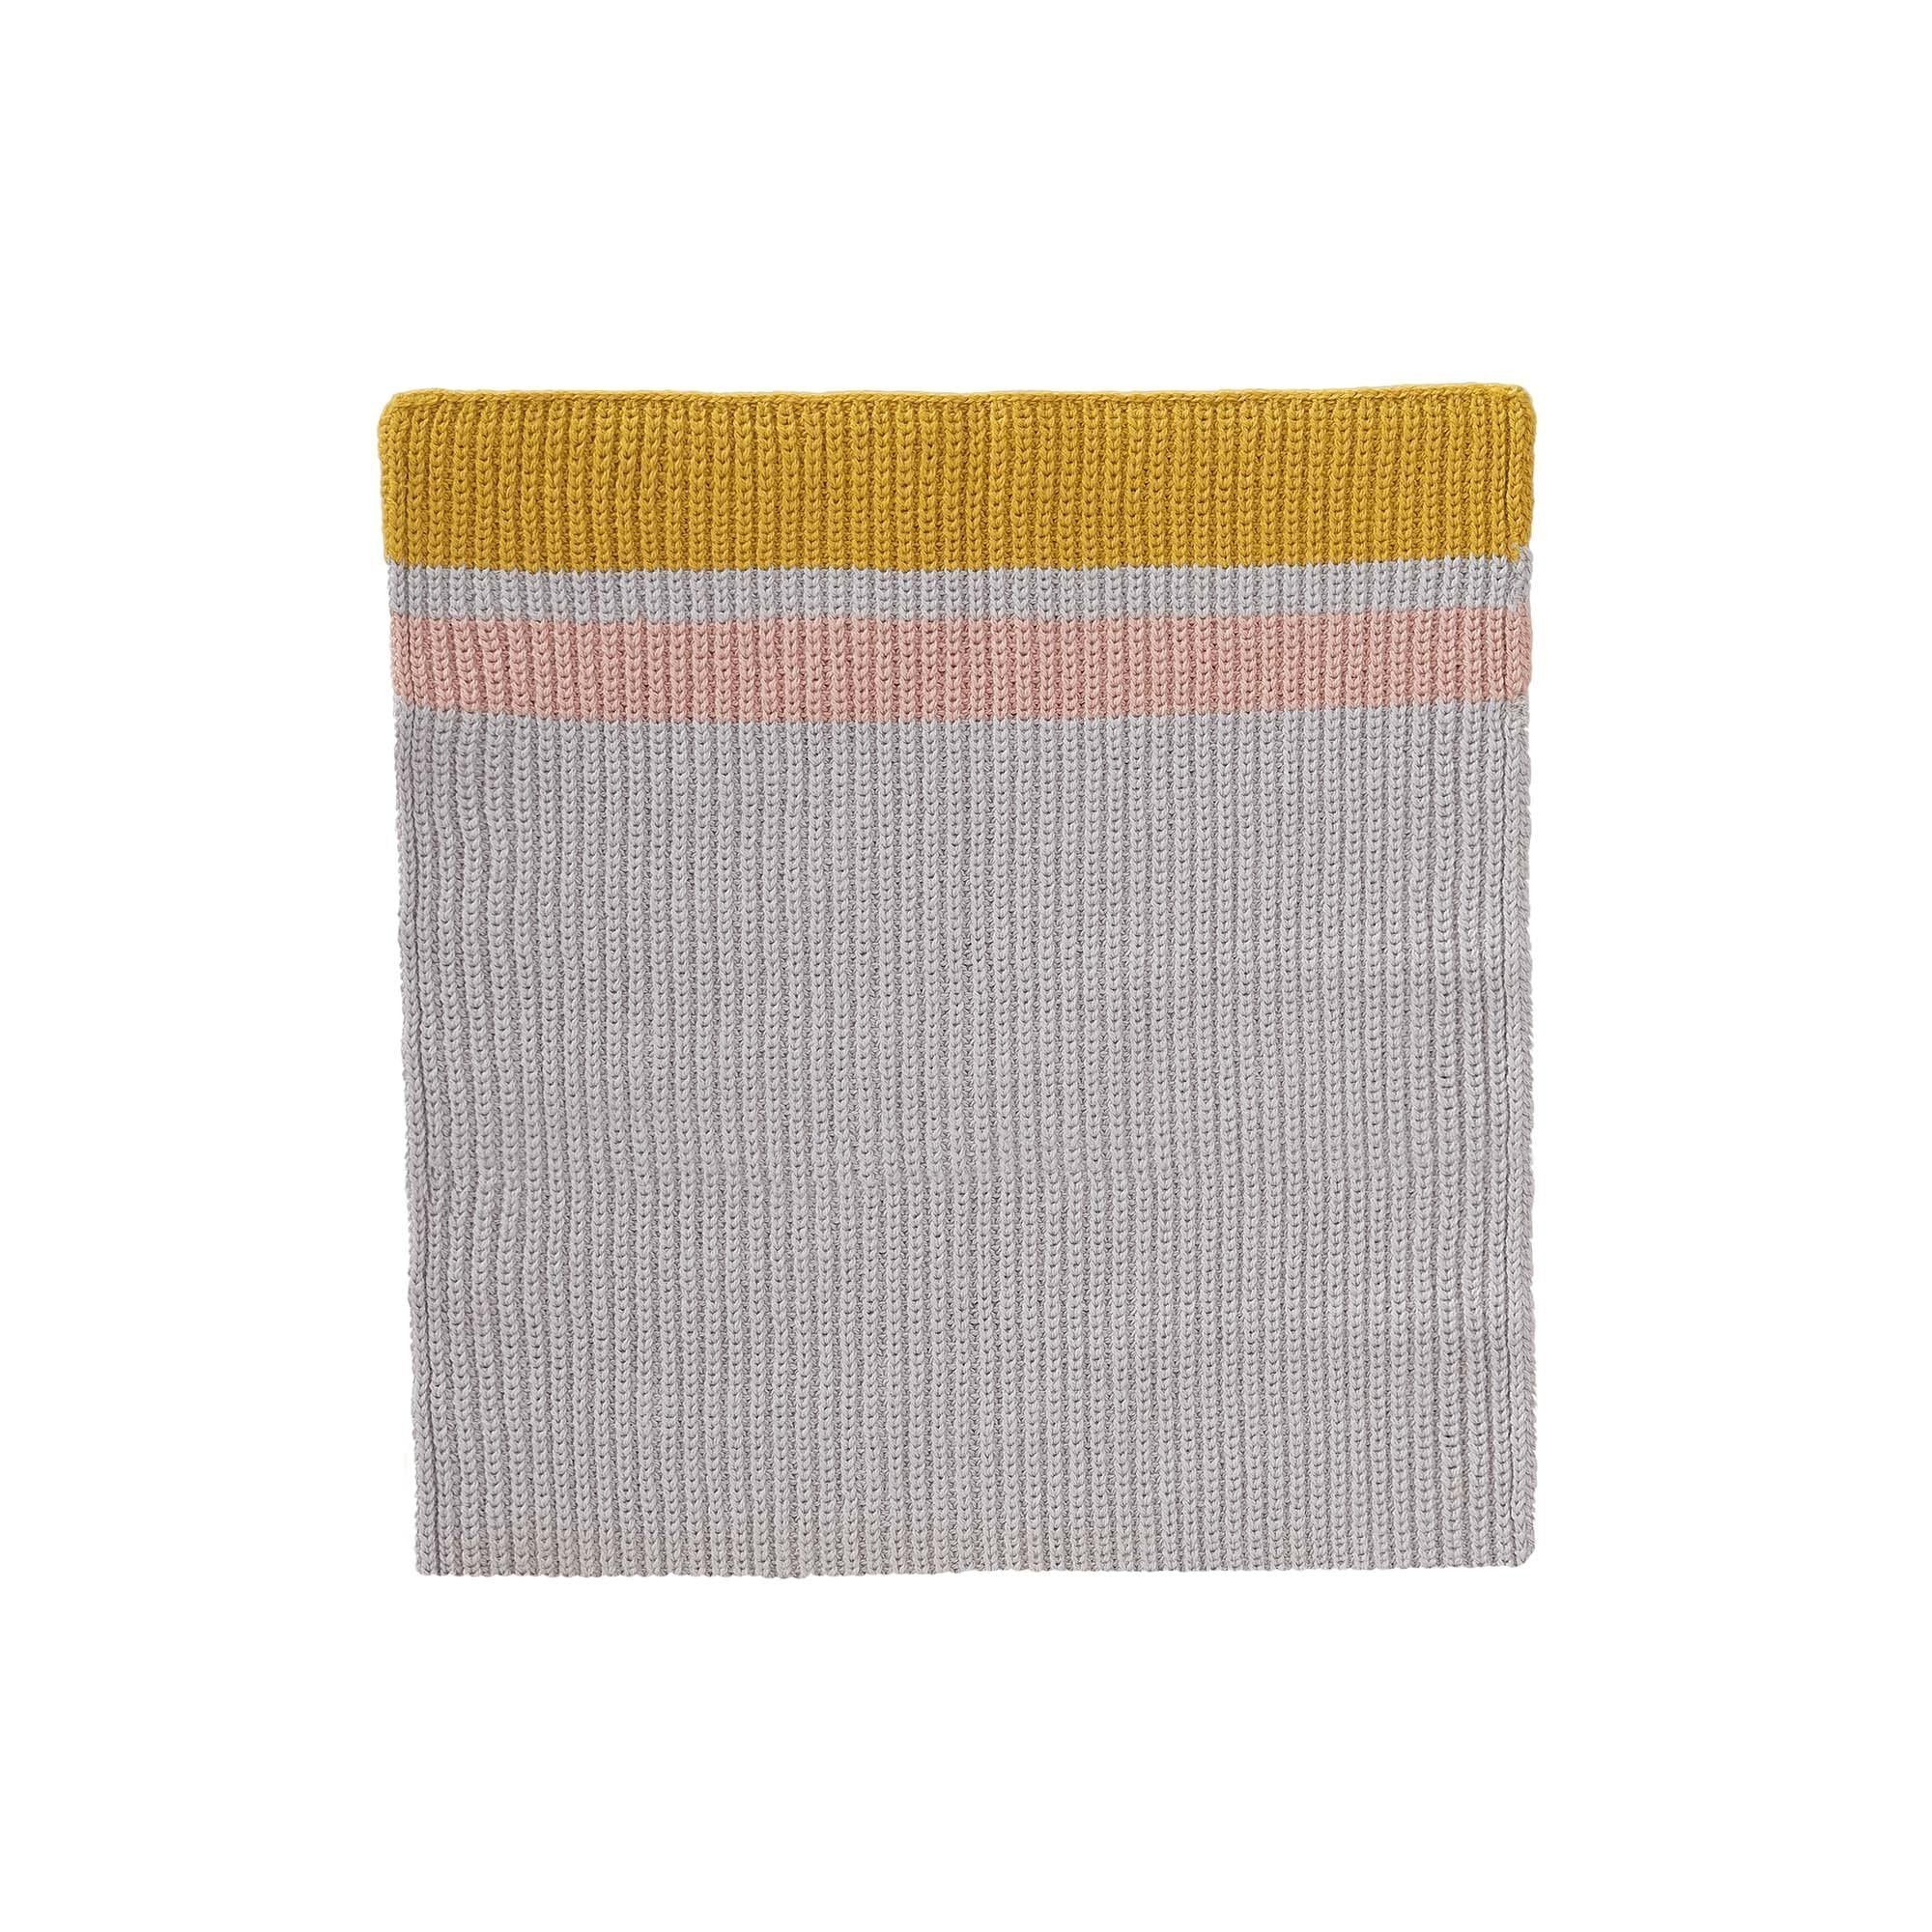 Silver grey & Bright mustard & Light pink Estrela Geschirrtuch | Home & Living inspiration | URBANARA